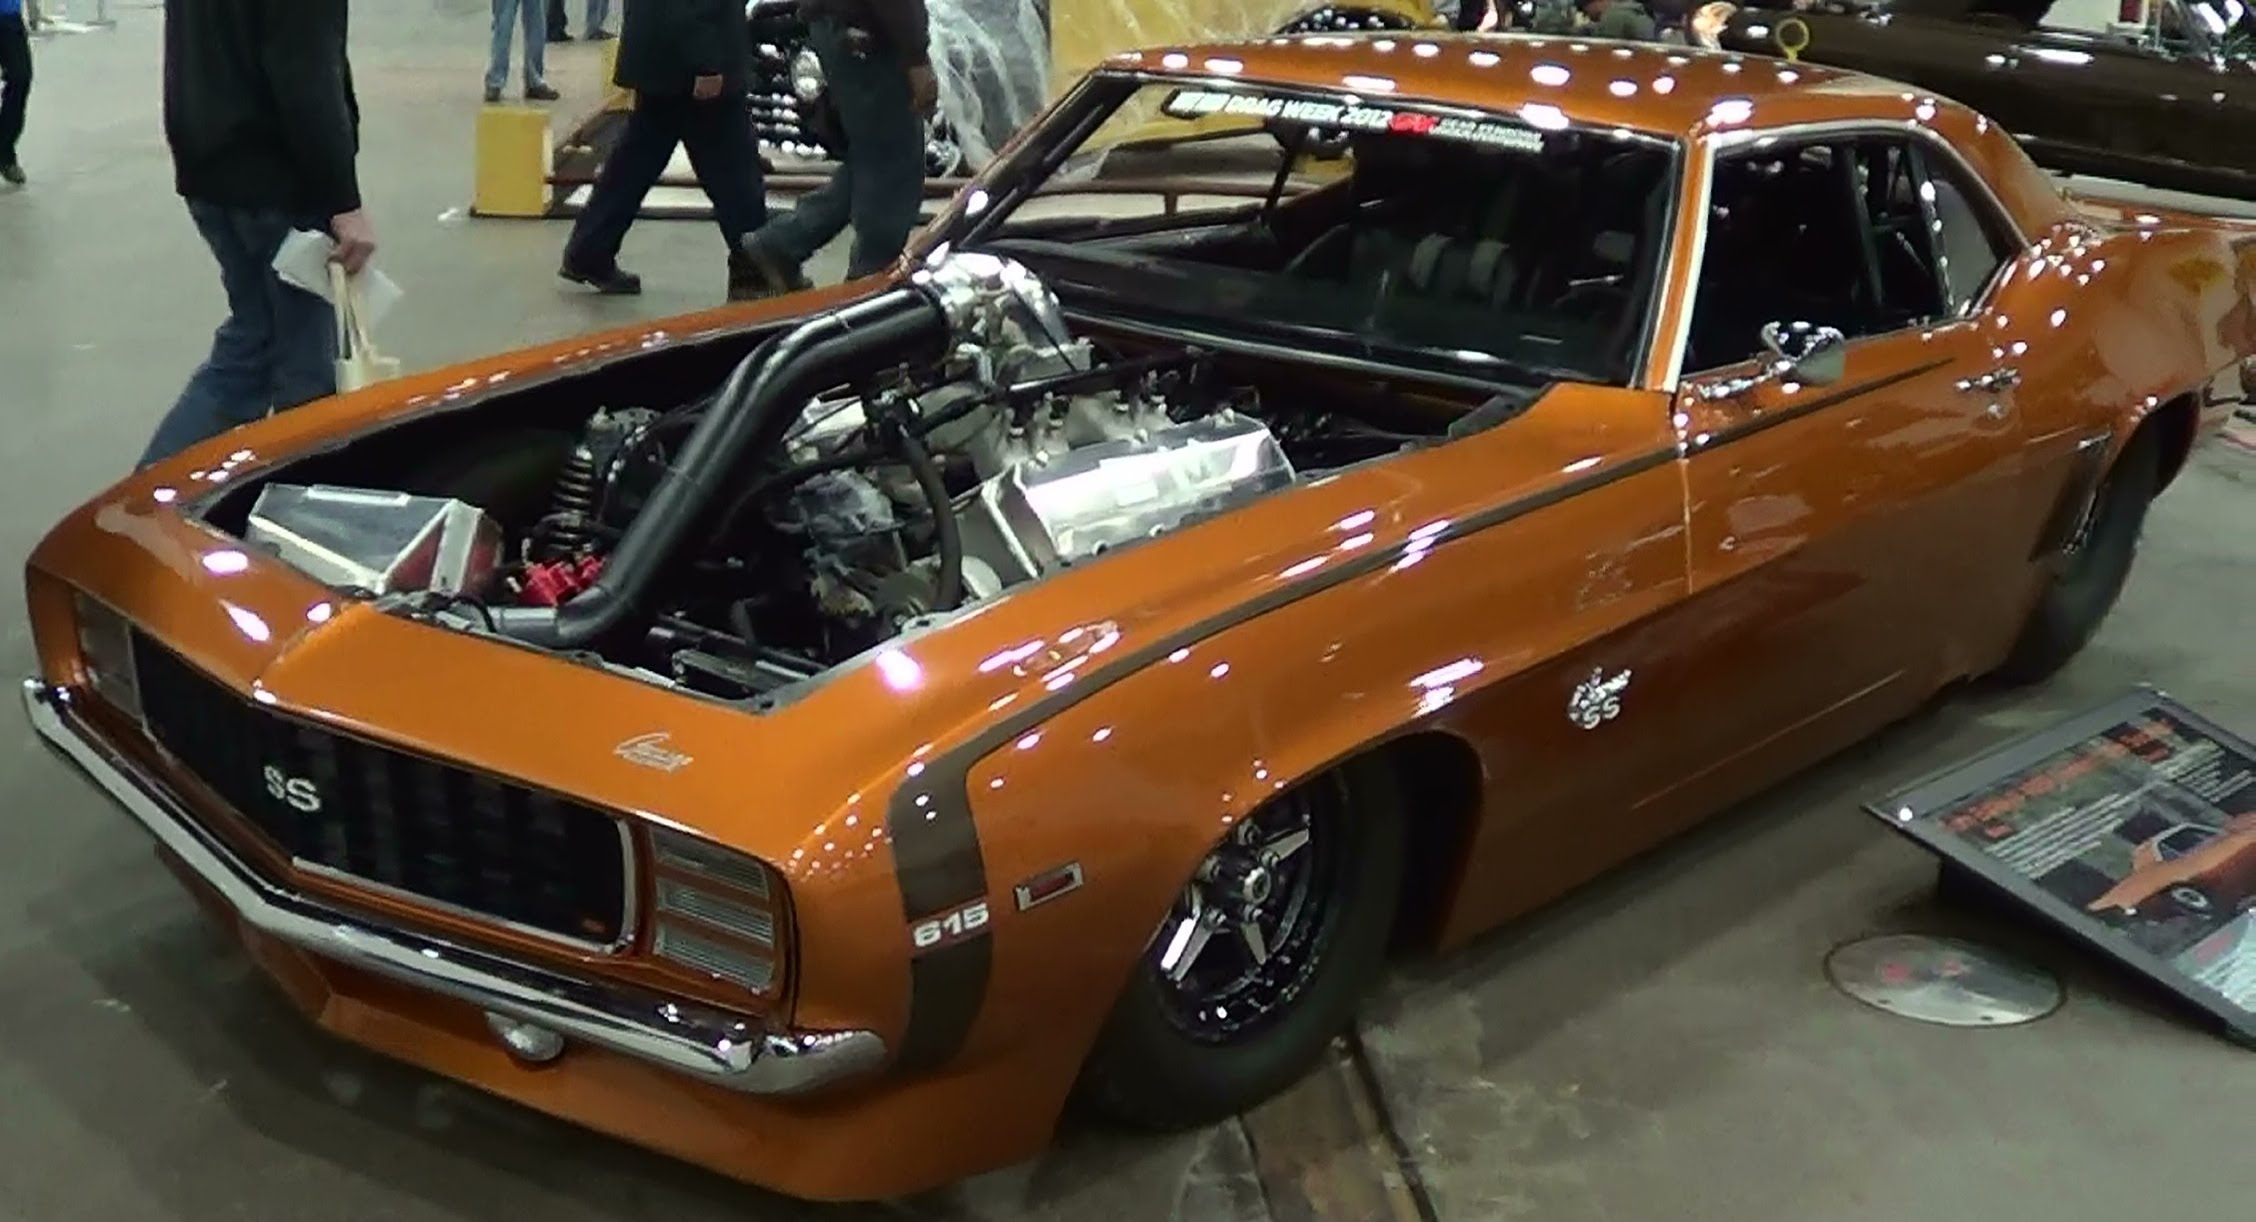 1969 Twin Turbo Camaro Sick Seconds 3350 Horse Street Car Scottiedtv Coolest Cars On The Web